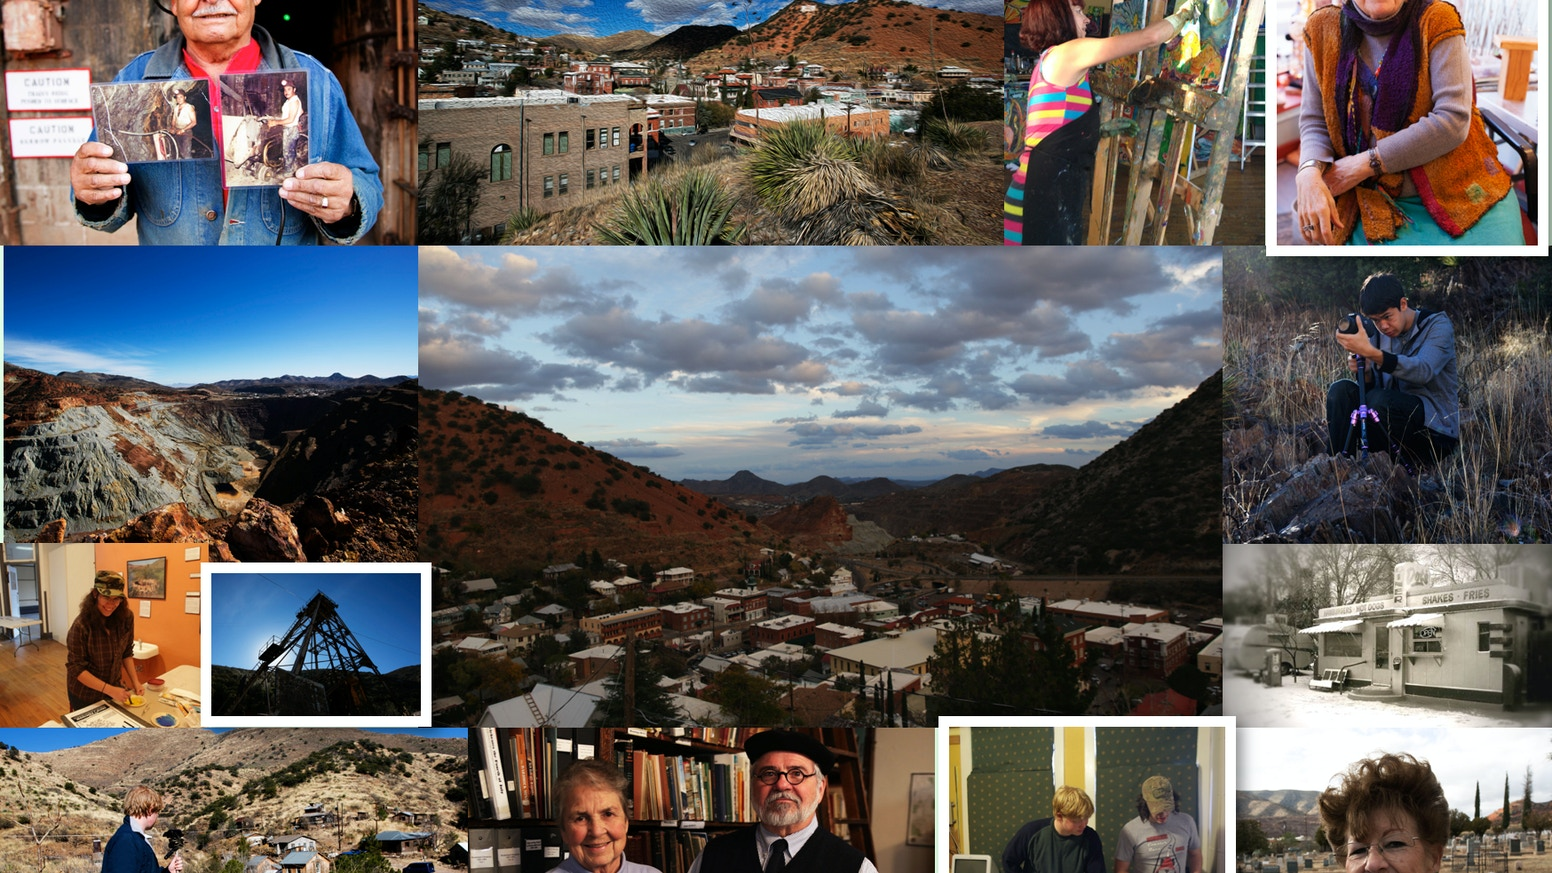 Interactive documentary exploring life in a Southwestern Borderlands community.